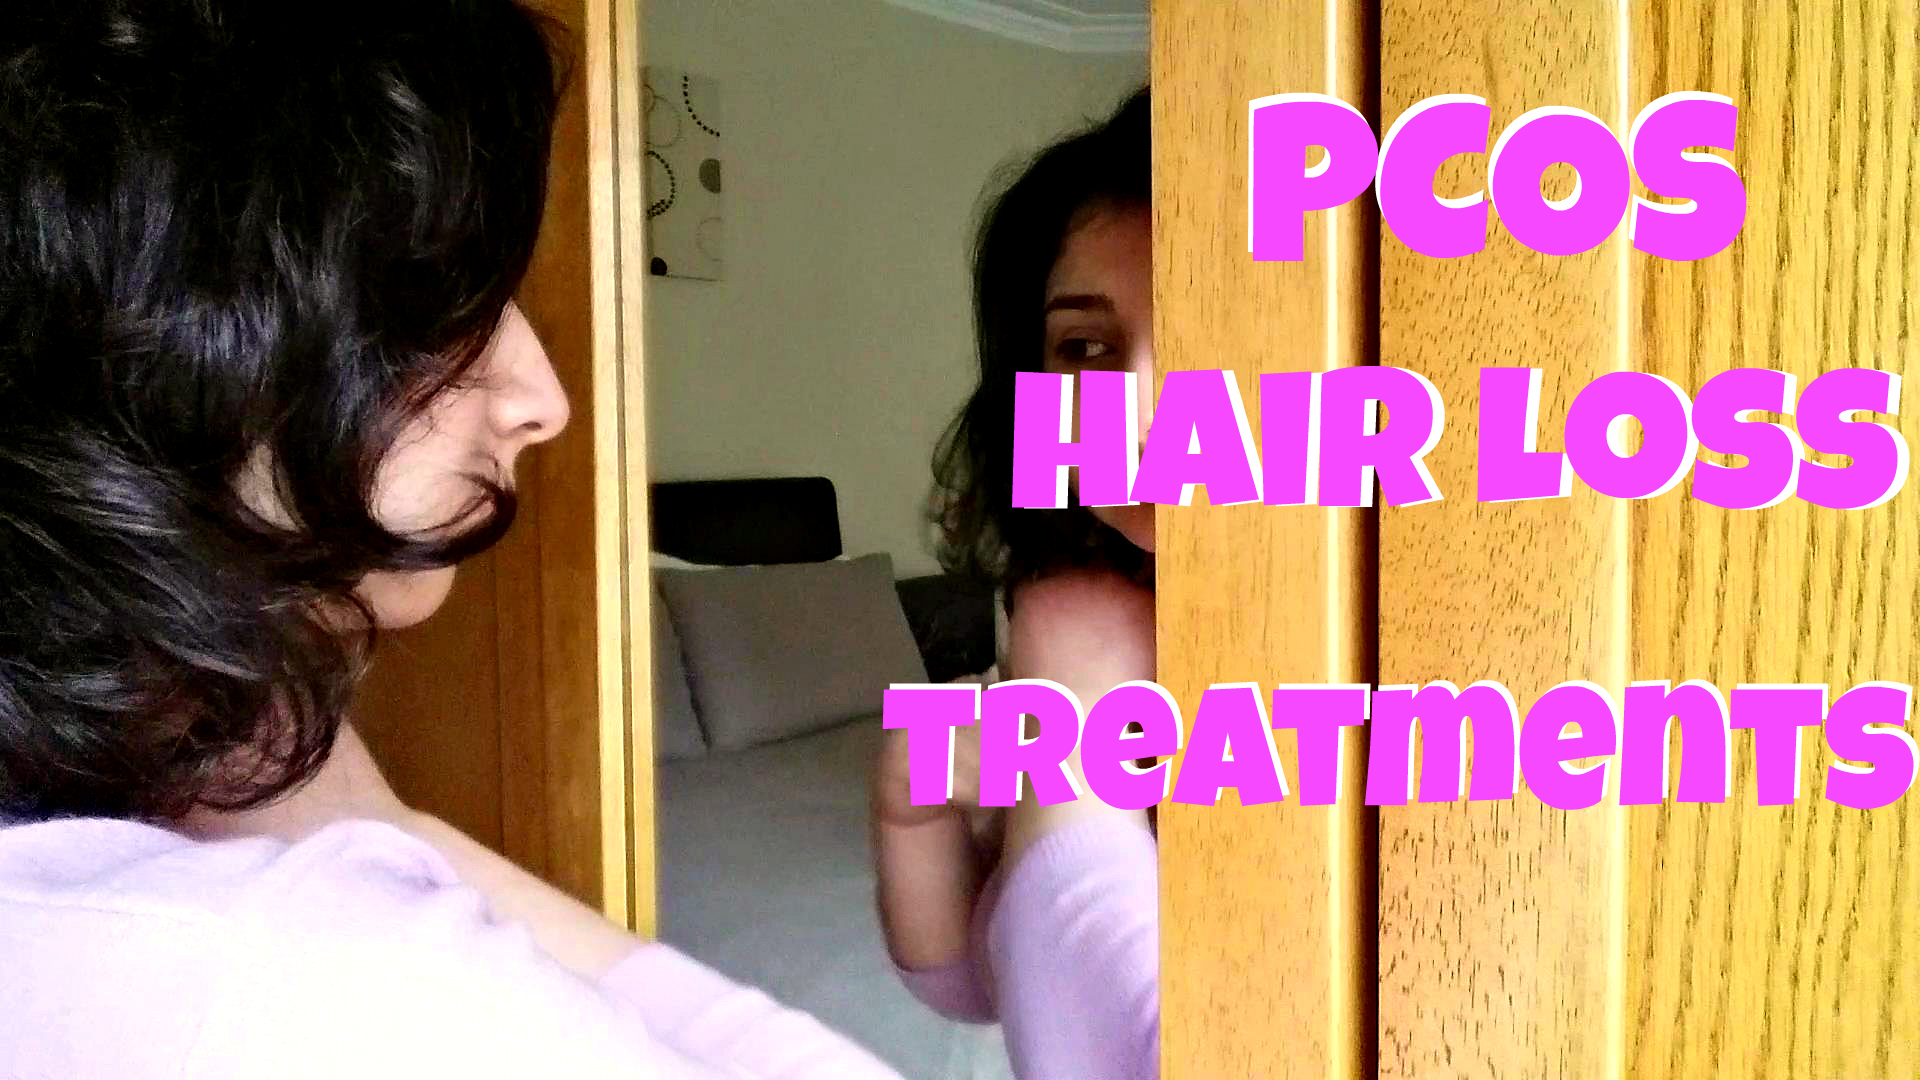 PCOS hair loss causes and treatment - PCOS and Nutrition